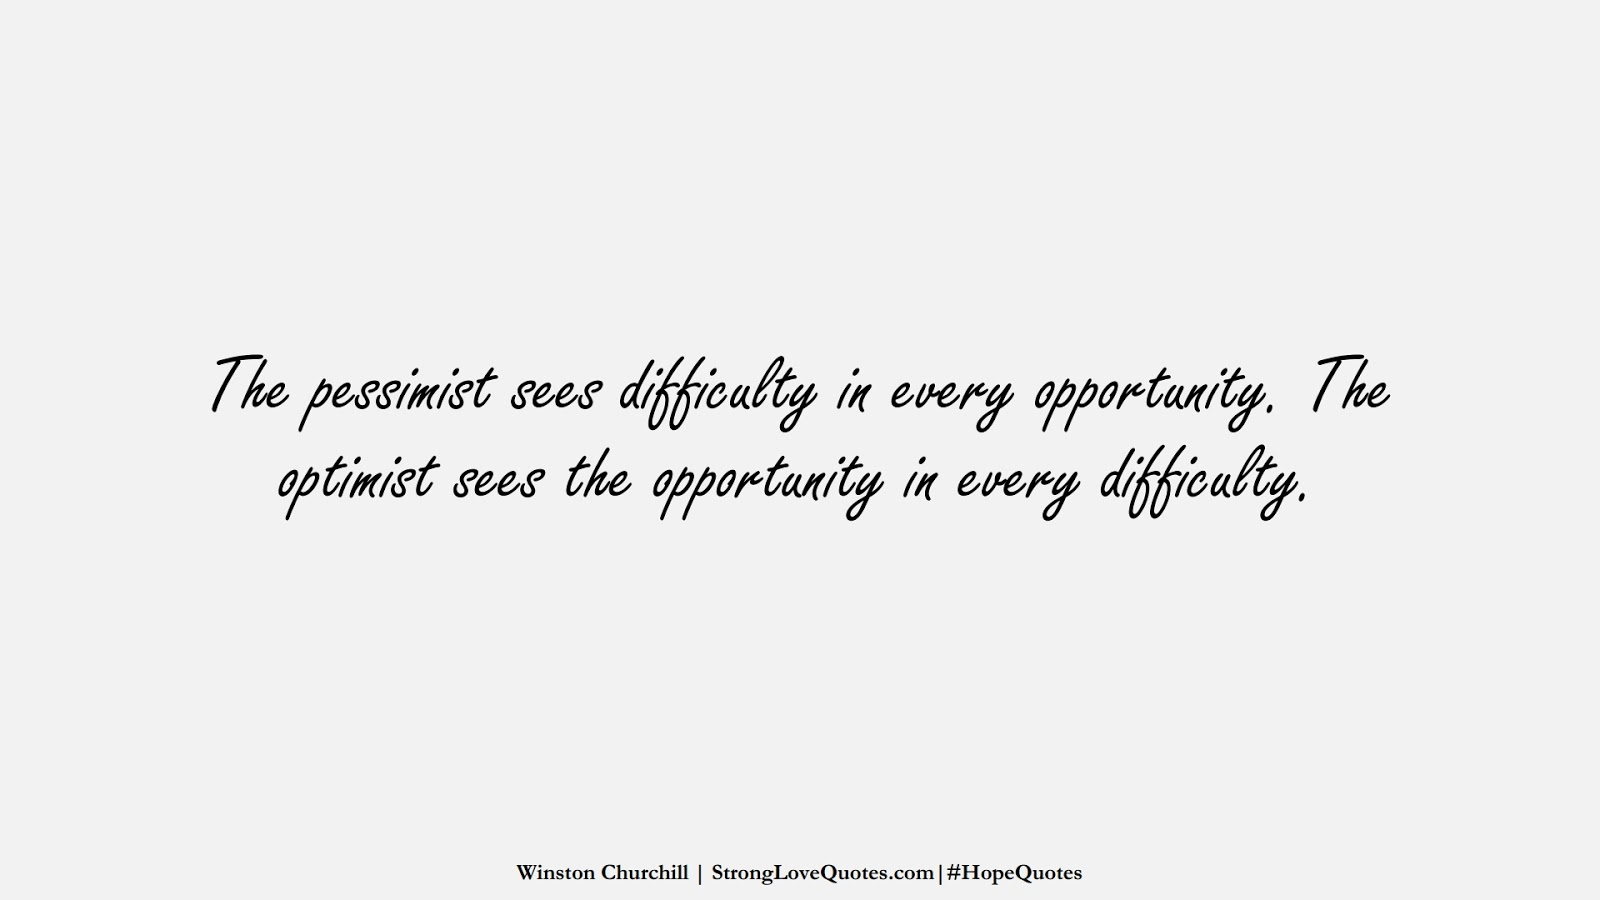 The pessimist sees difficulty in every opportunity. The optimist sees the opportunity in every difficulty. (Winston Churchill);  #HopeQuotes